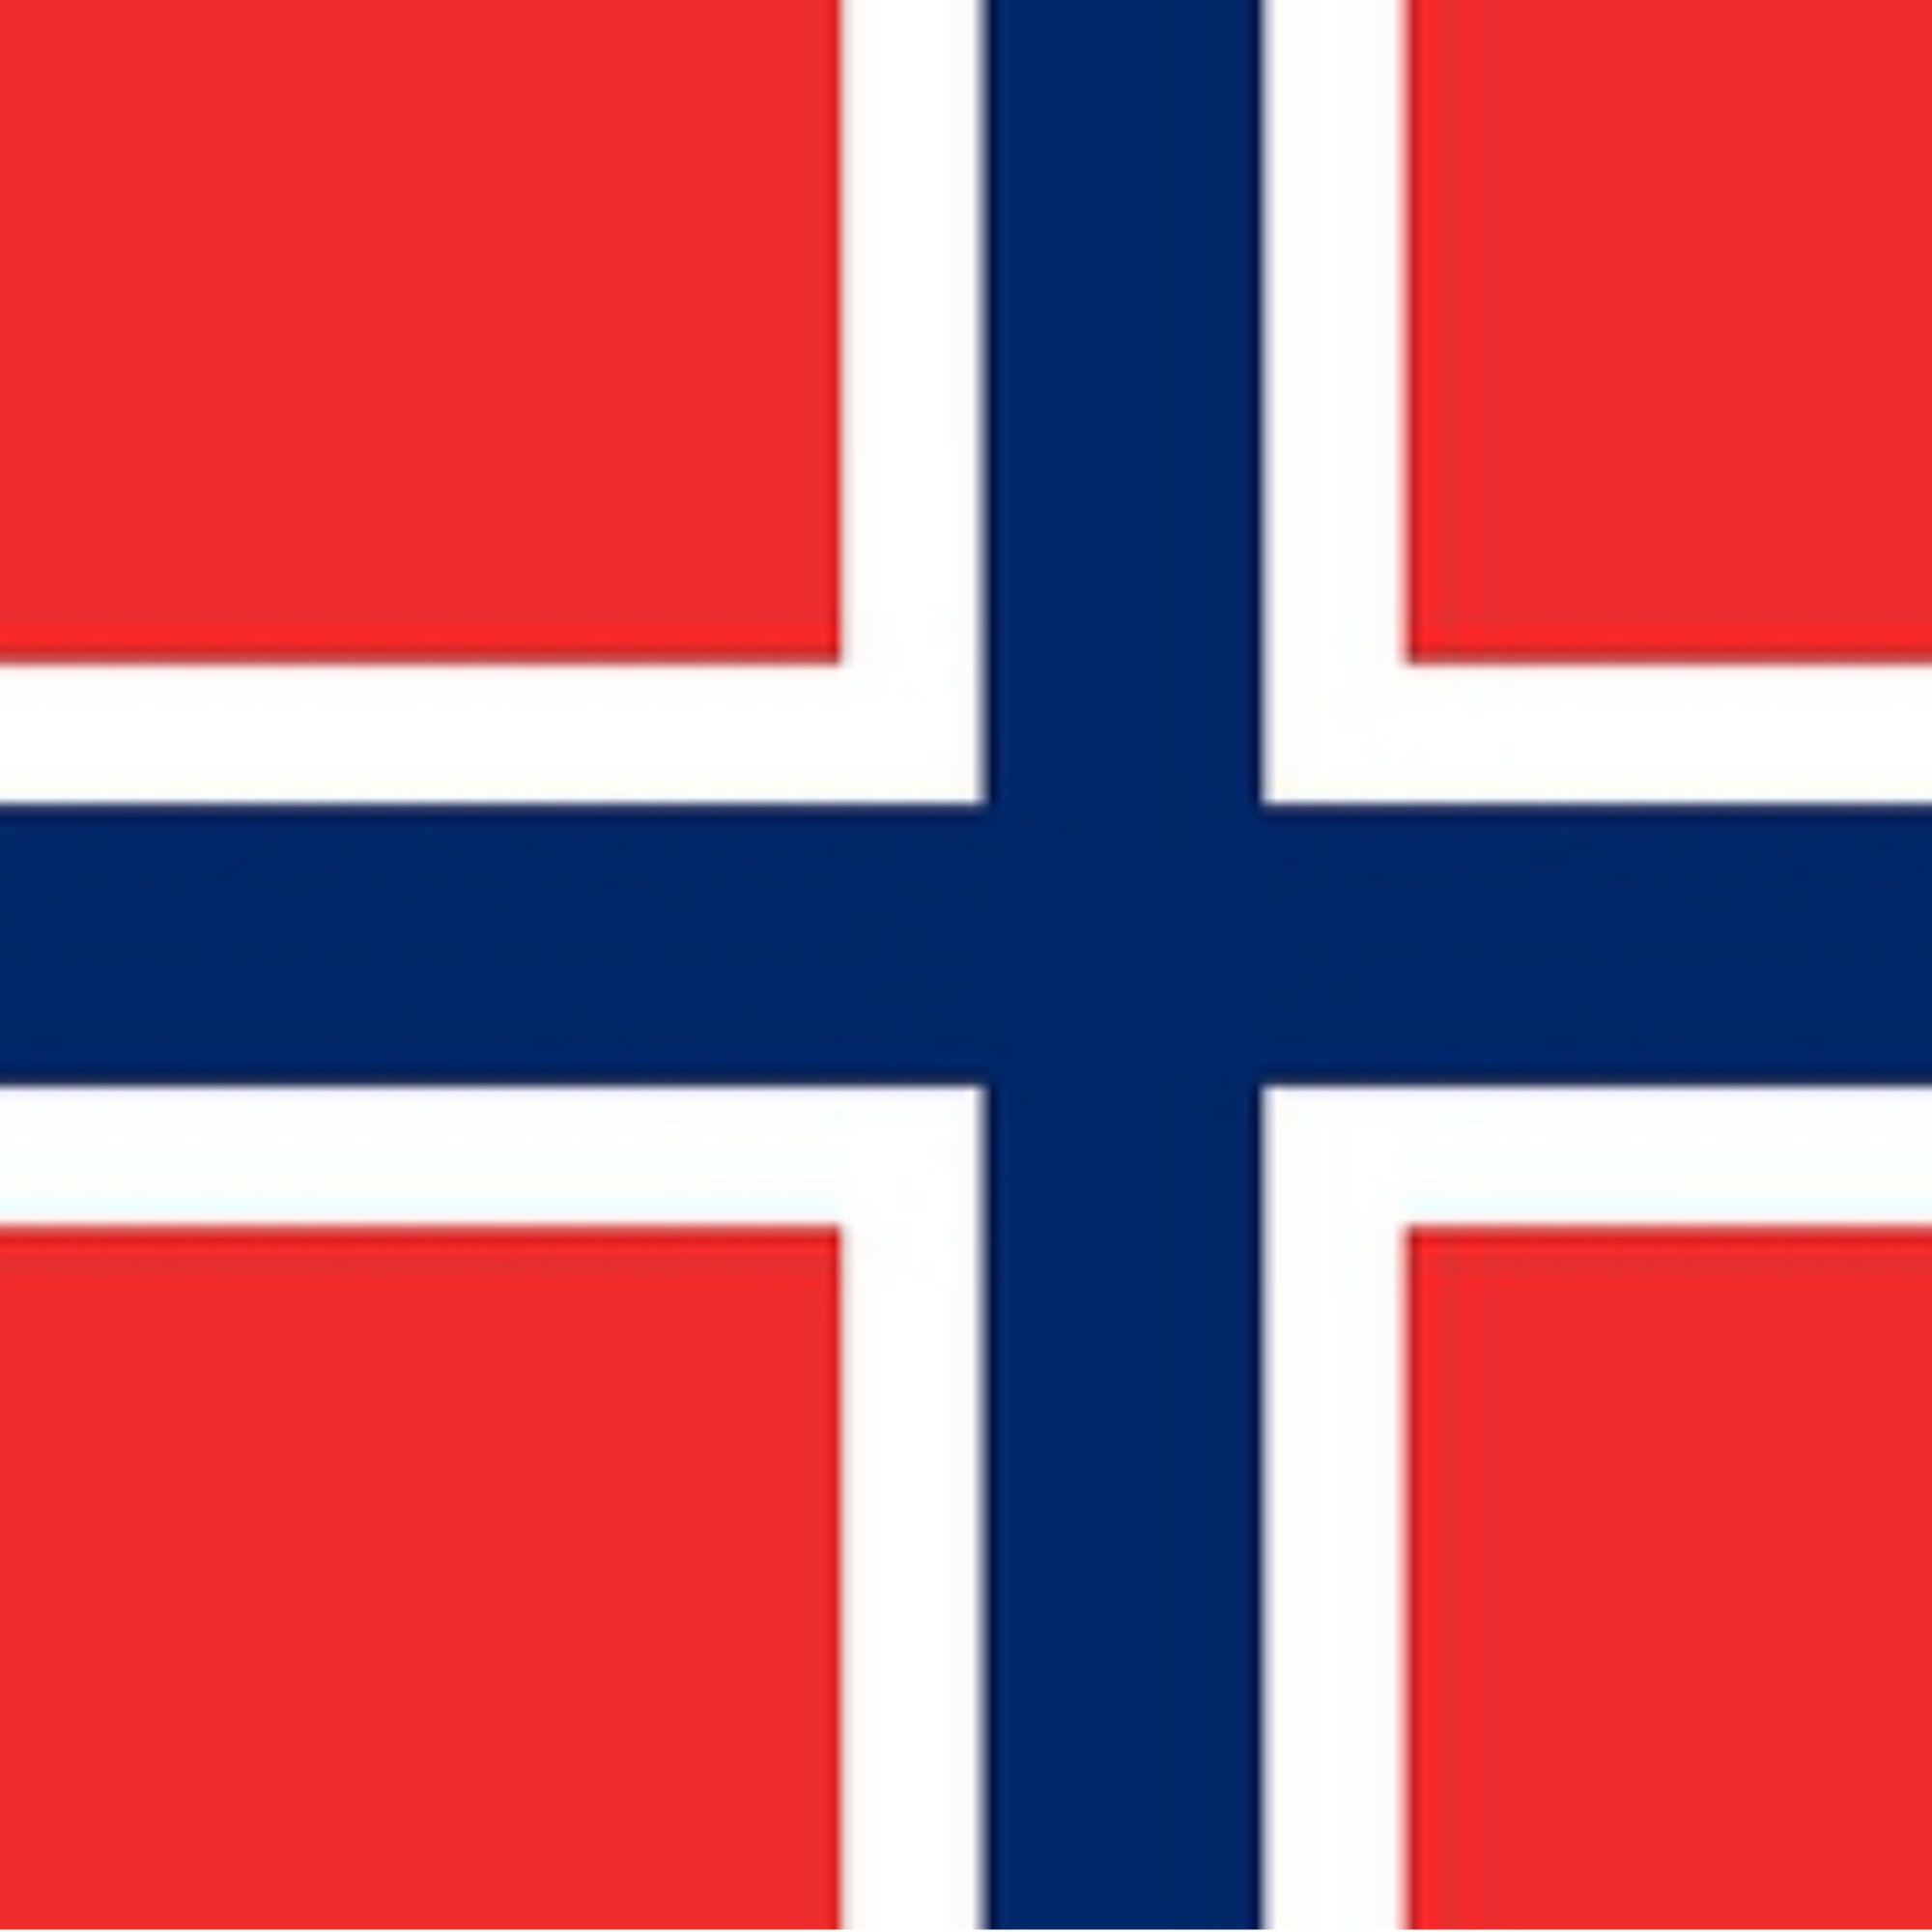 Honorarkonsulat von Norwegen (Benidorm)